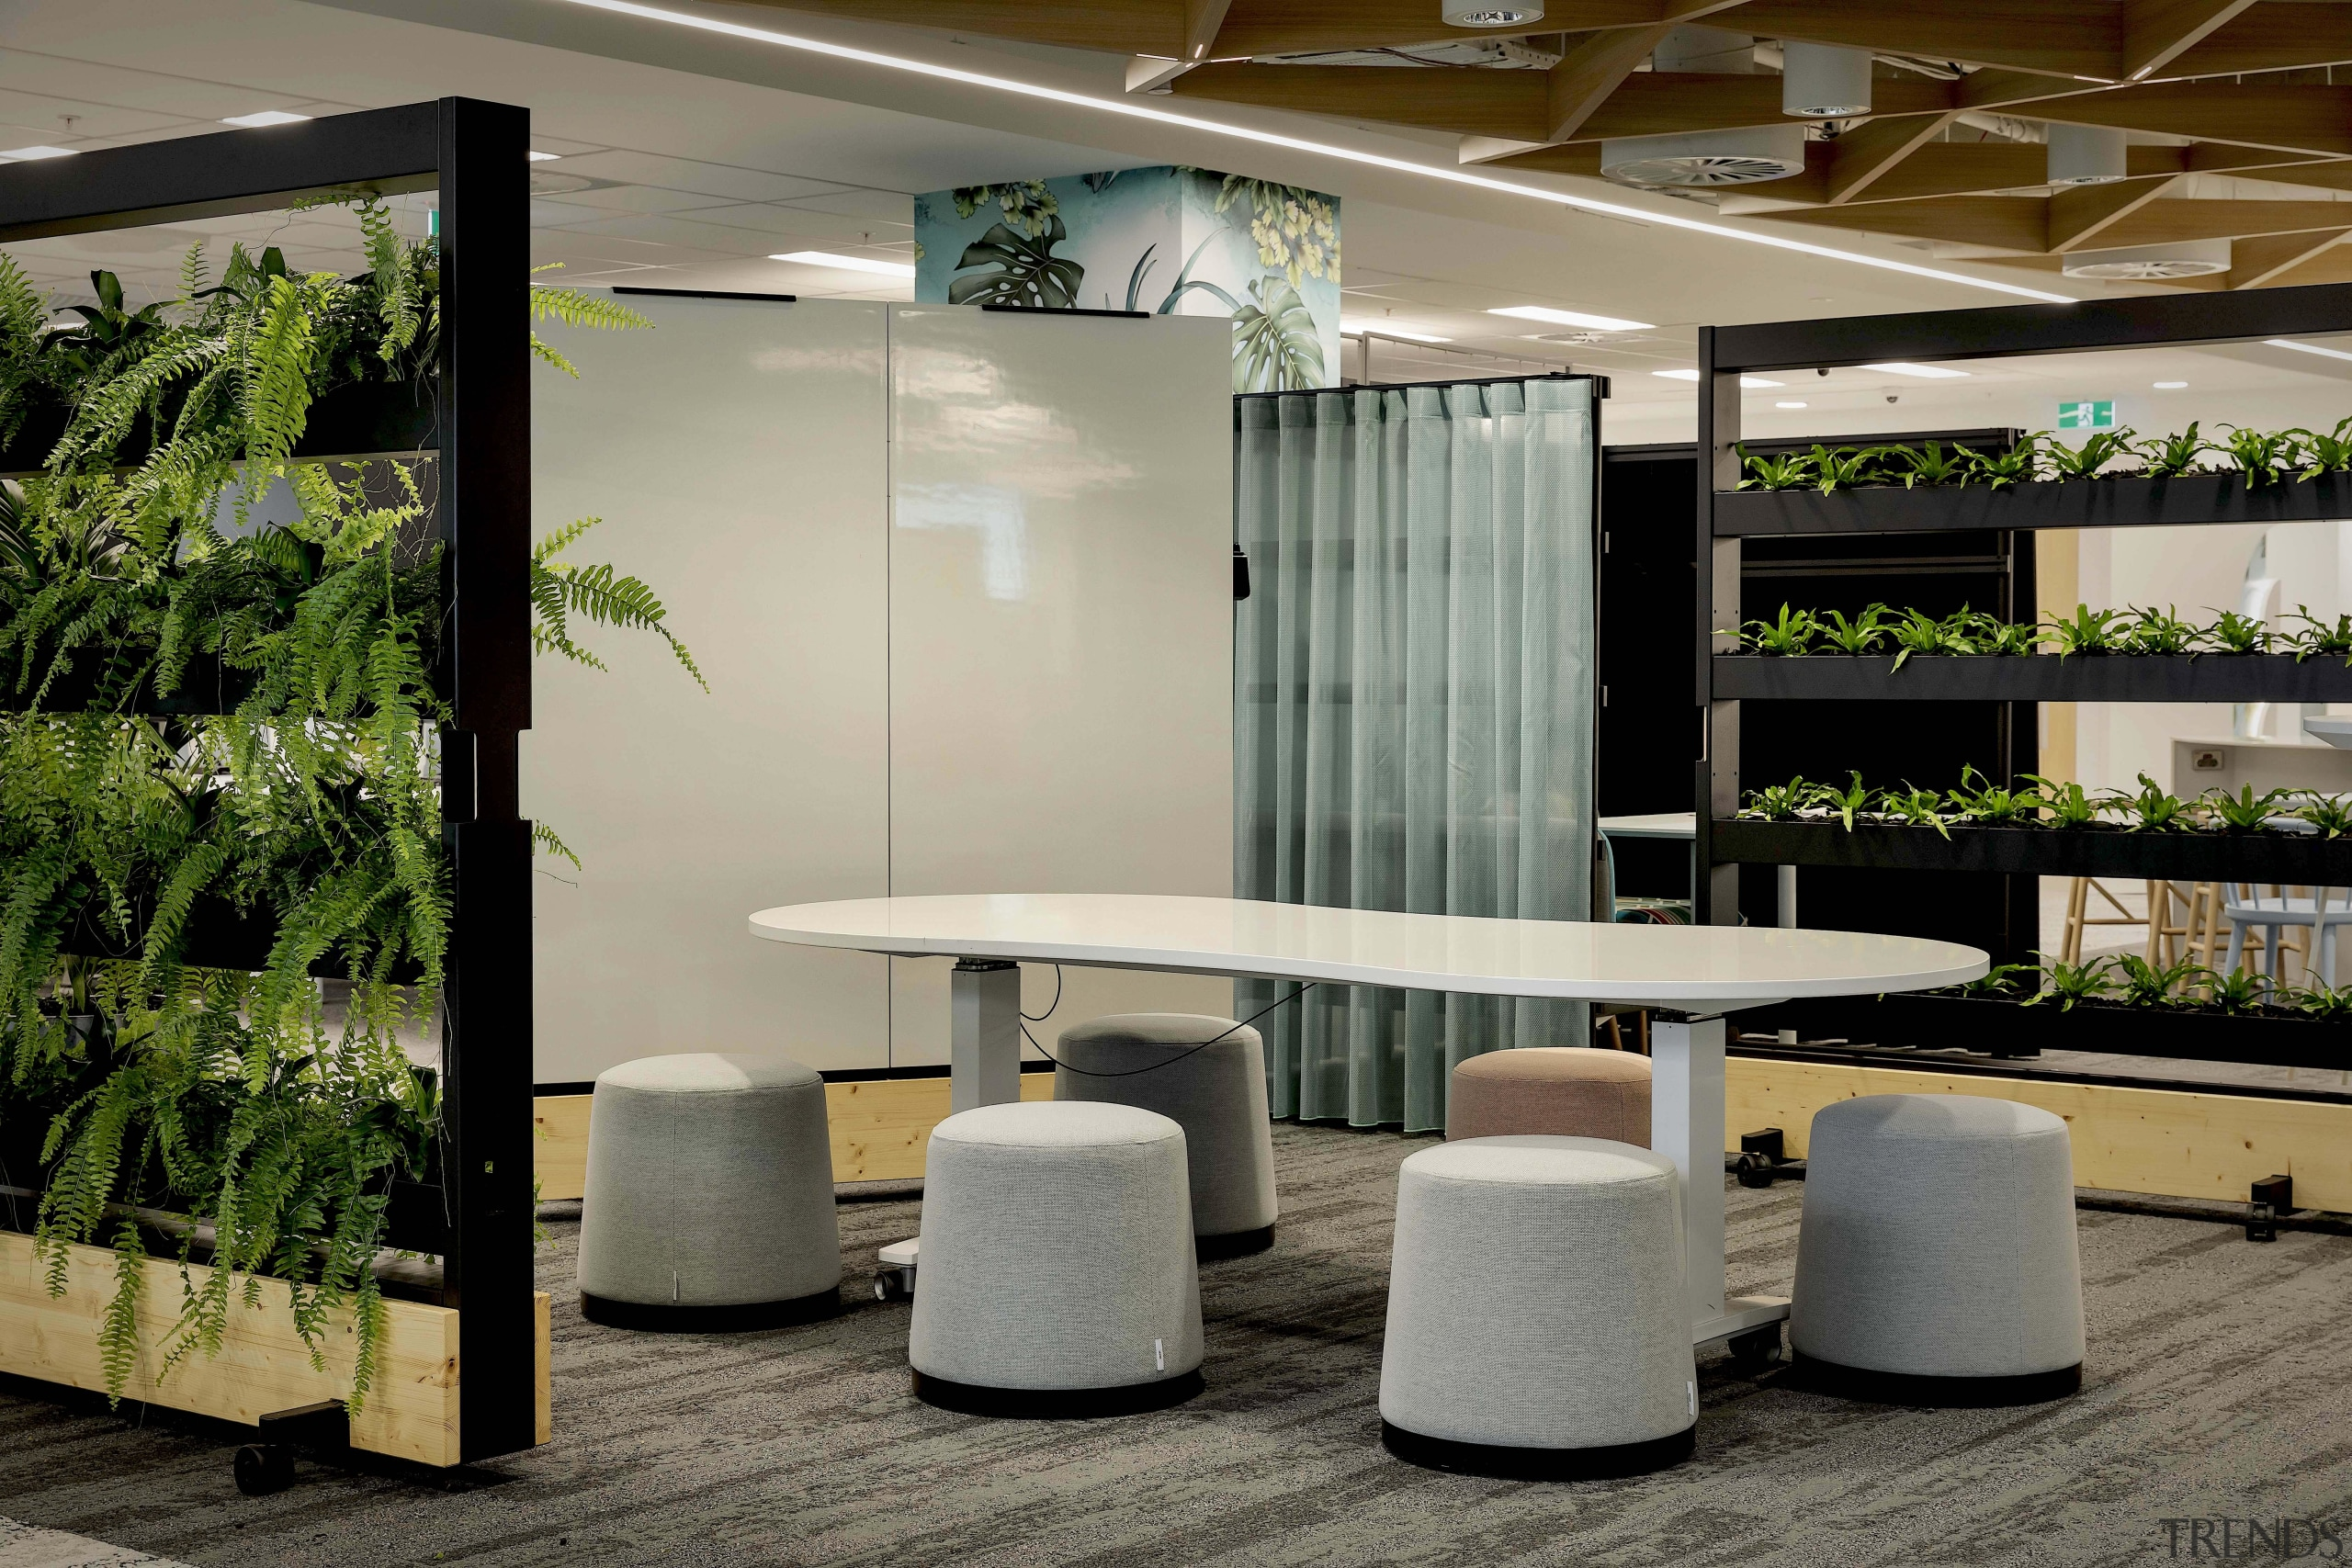 This flexible, relaxing collaboration space benefits from an gray